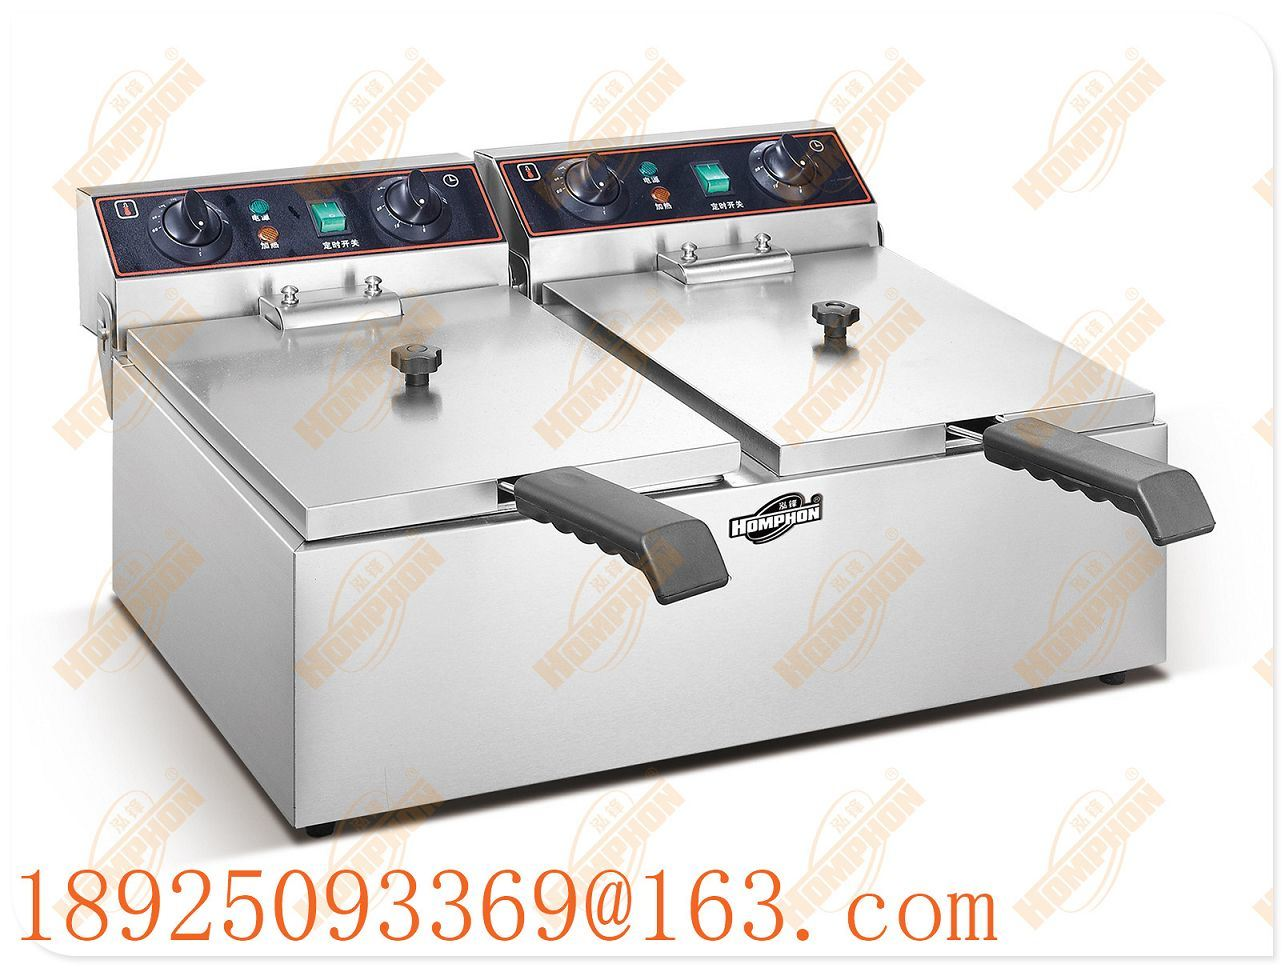 Catering Equipment Chicken Fryer (172)